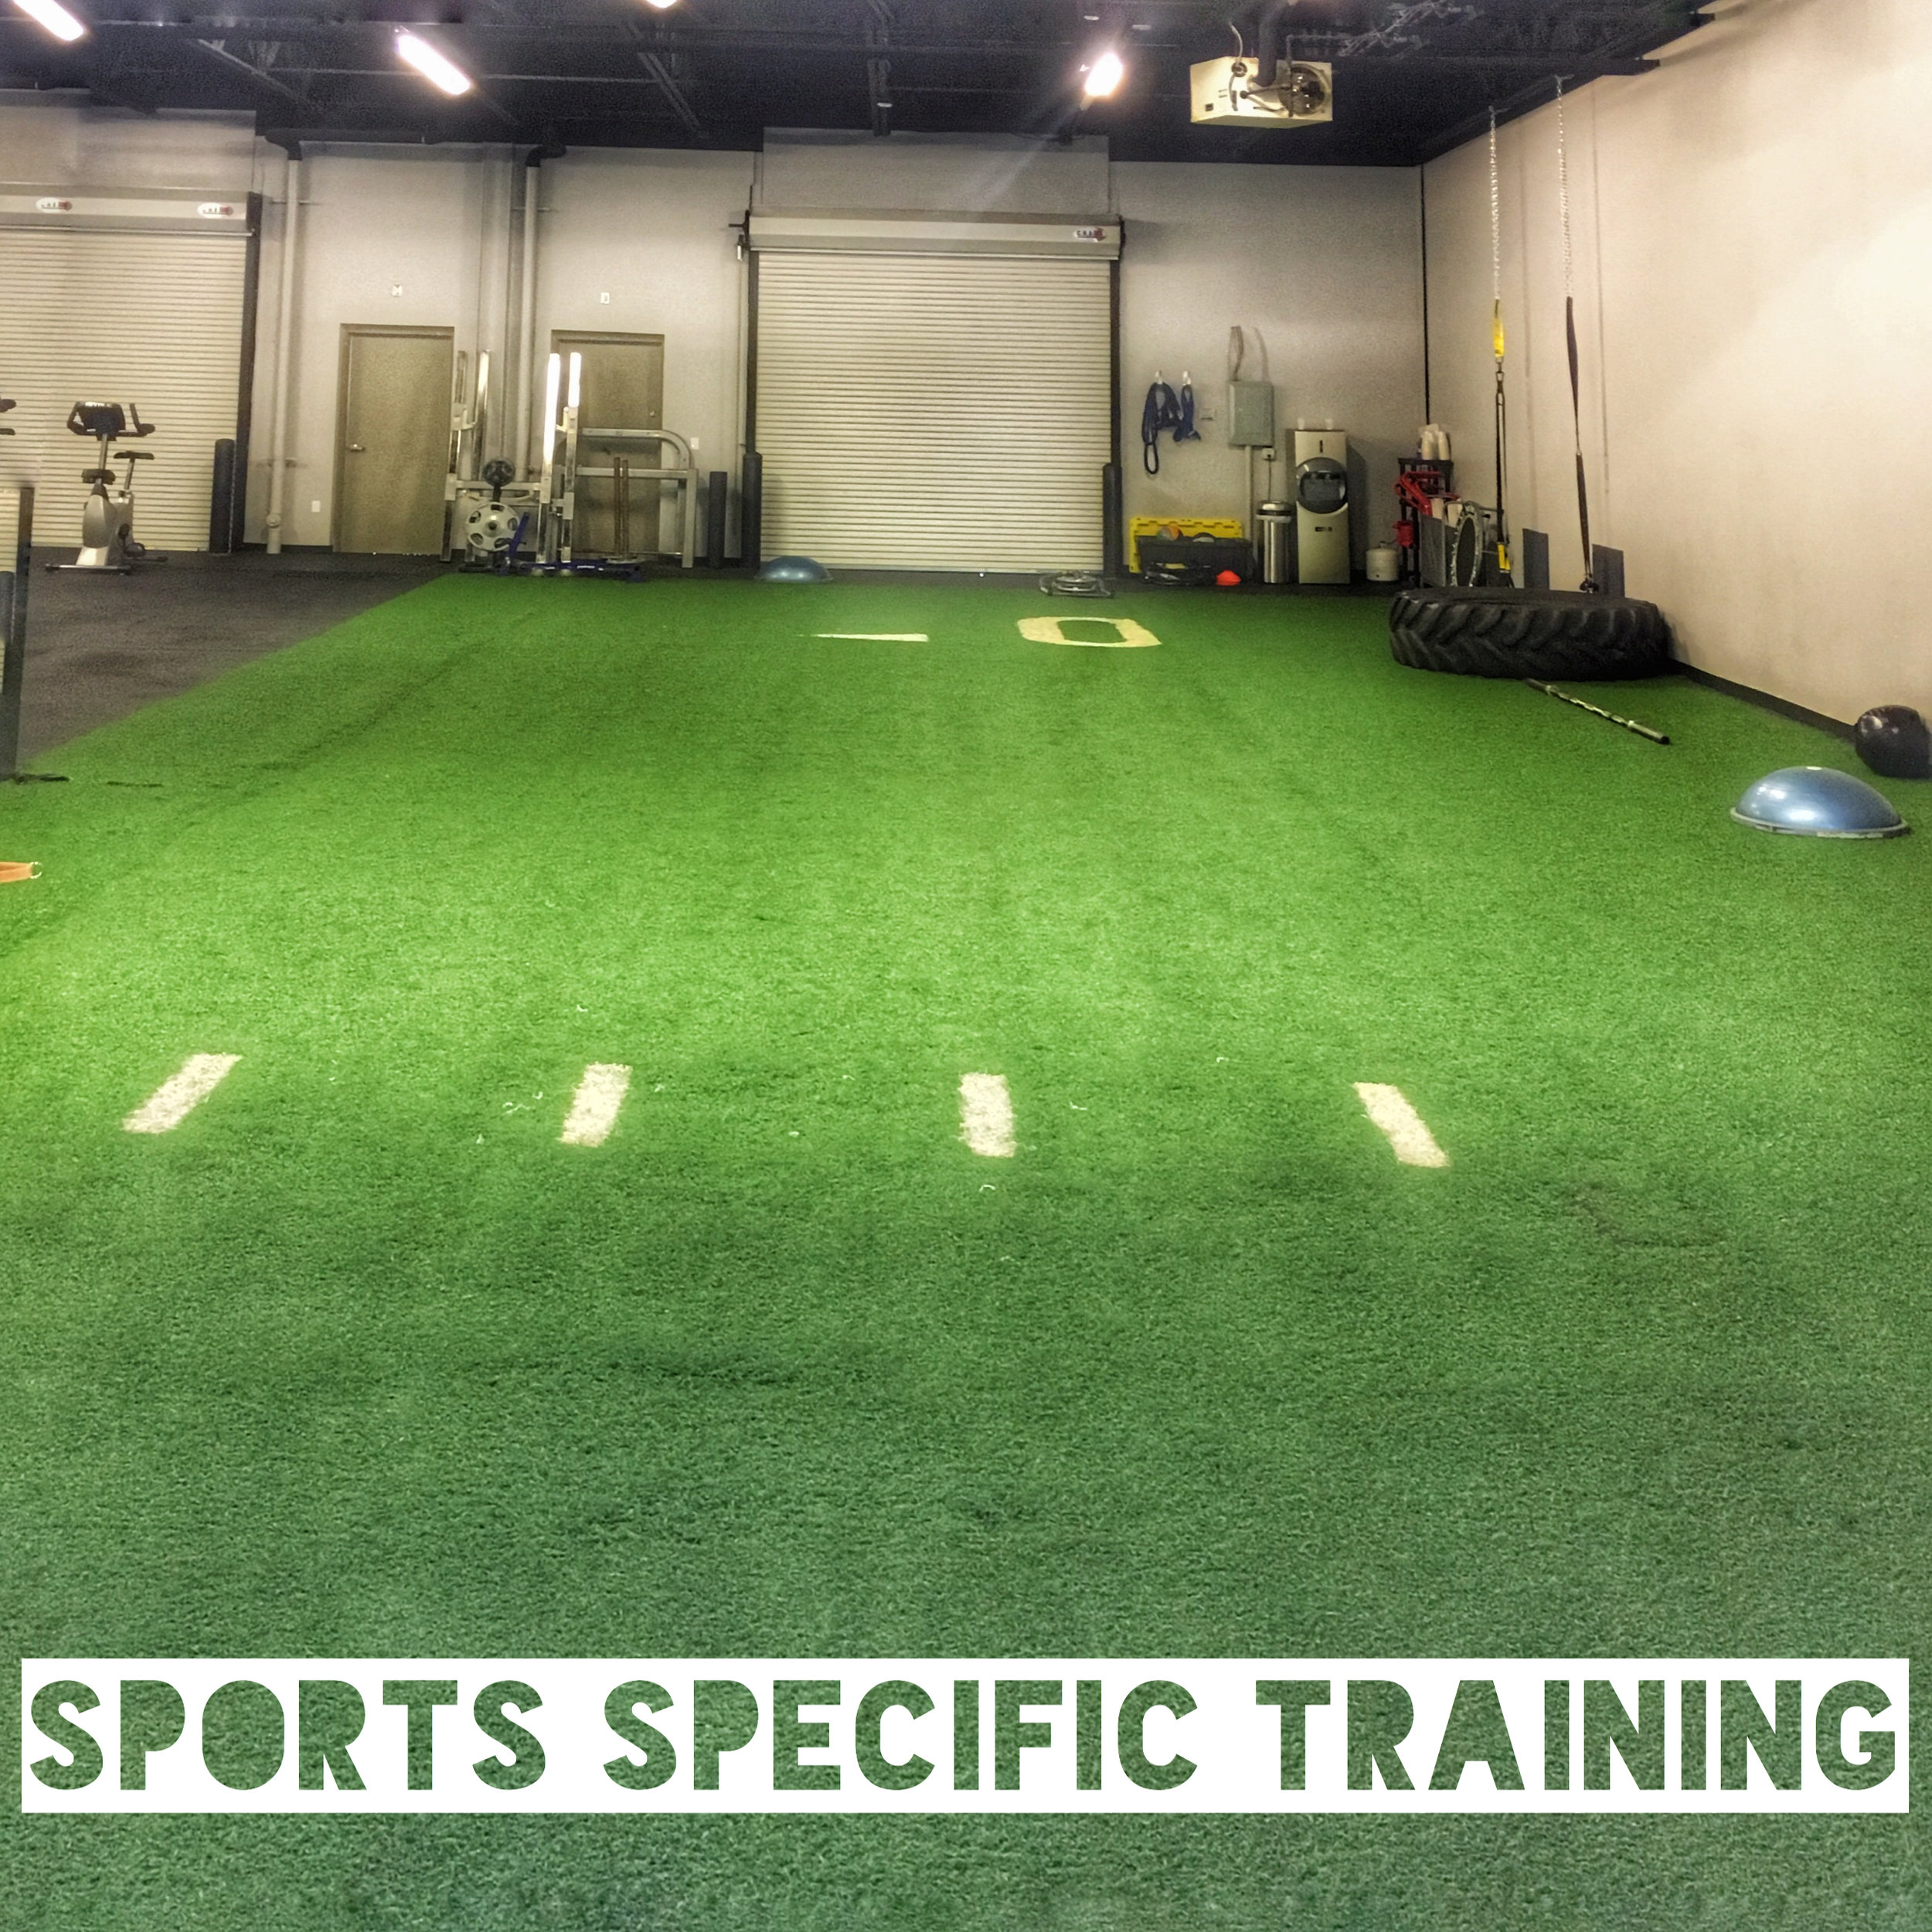 Did you know Live Fit has 25 yards of indoor turf? Our certified personal trainers use the indior turf for sport specific training. This type of personal training can include speed drills, foot work, explosive training and much more.